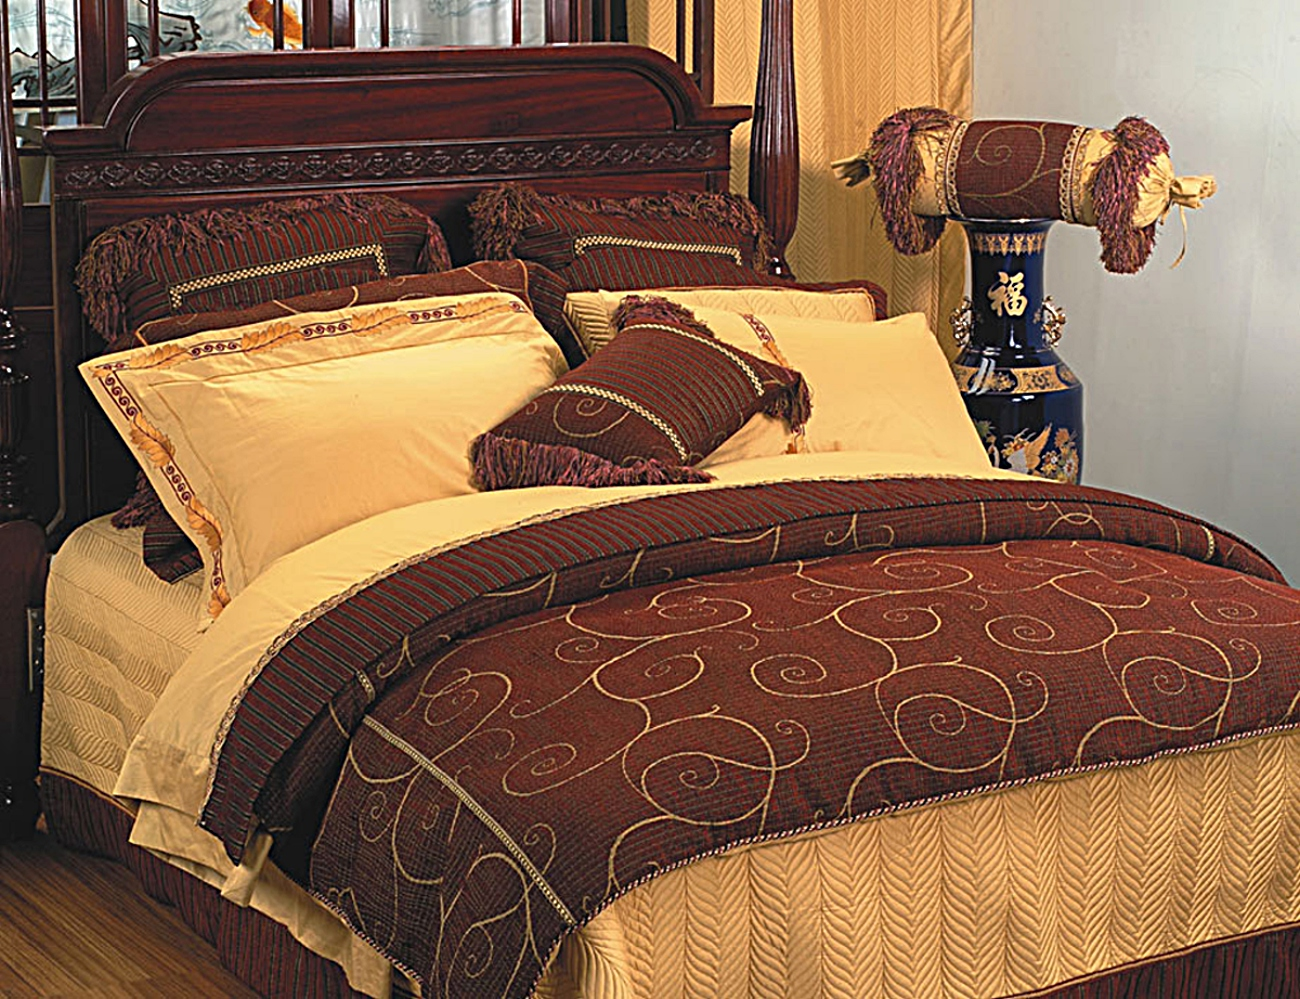 Luxury Bedding – Luxury Bedding Sets and Bed Linens